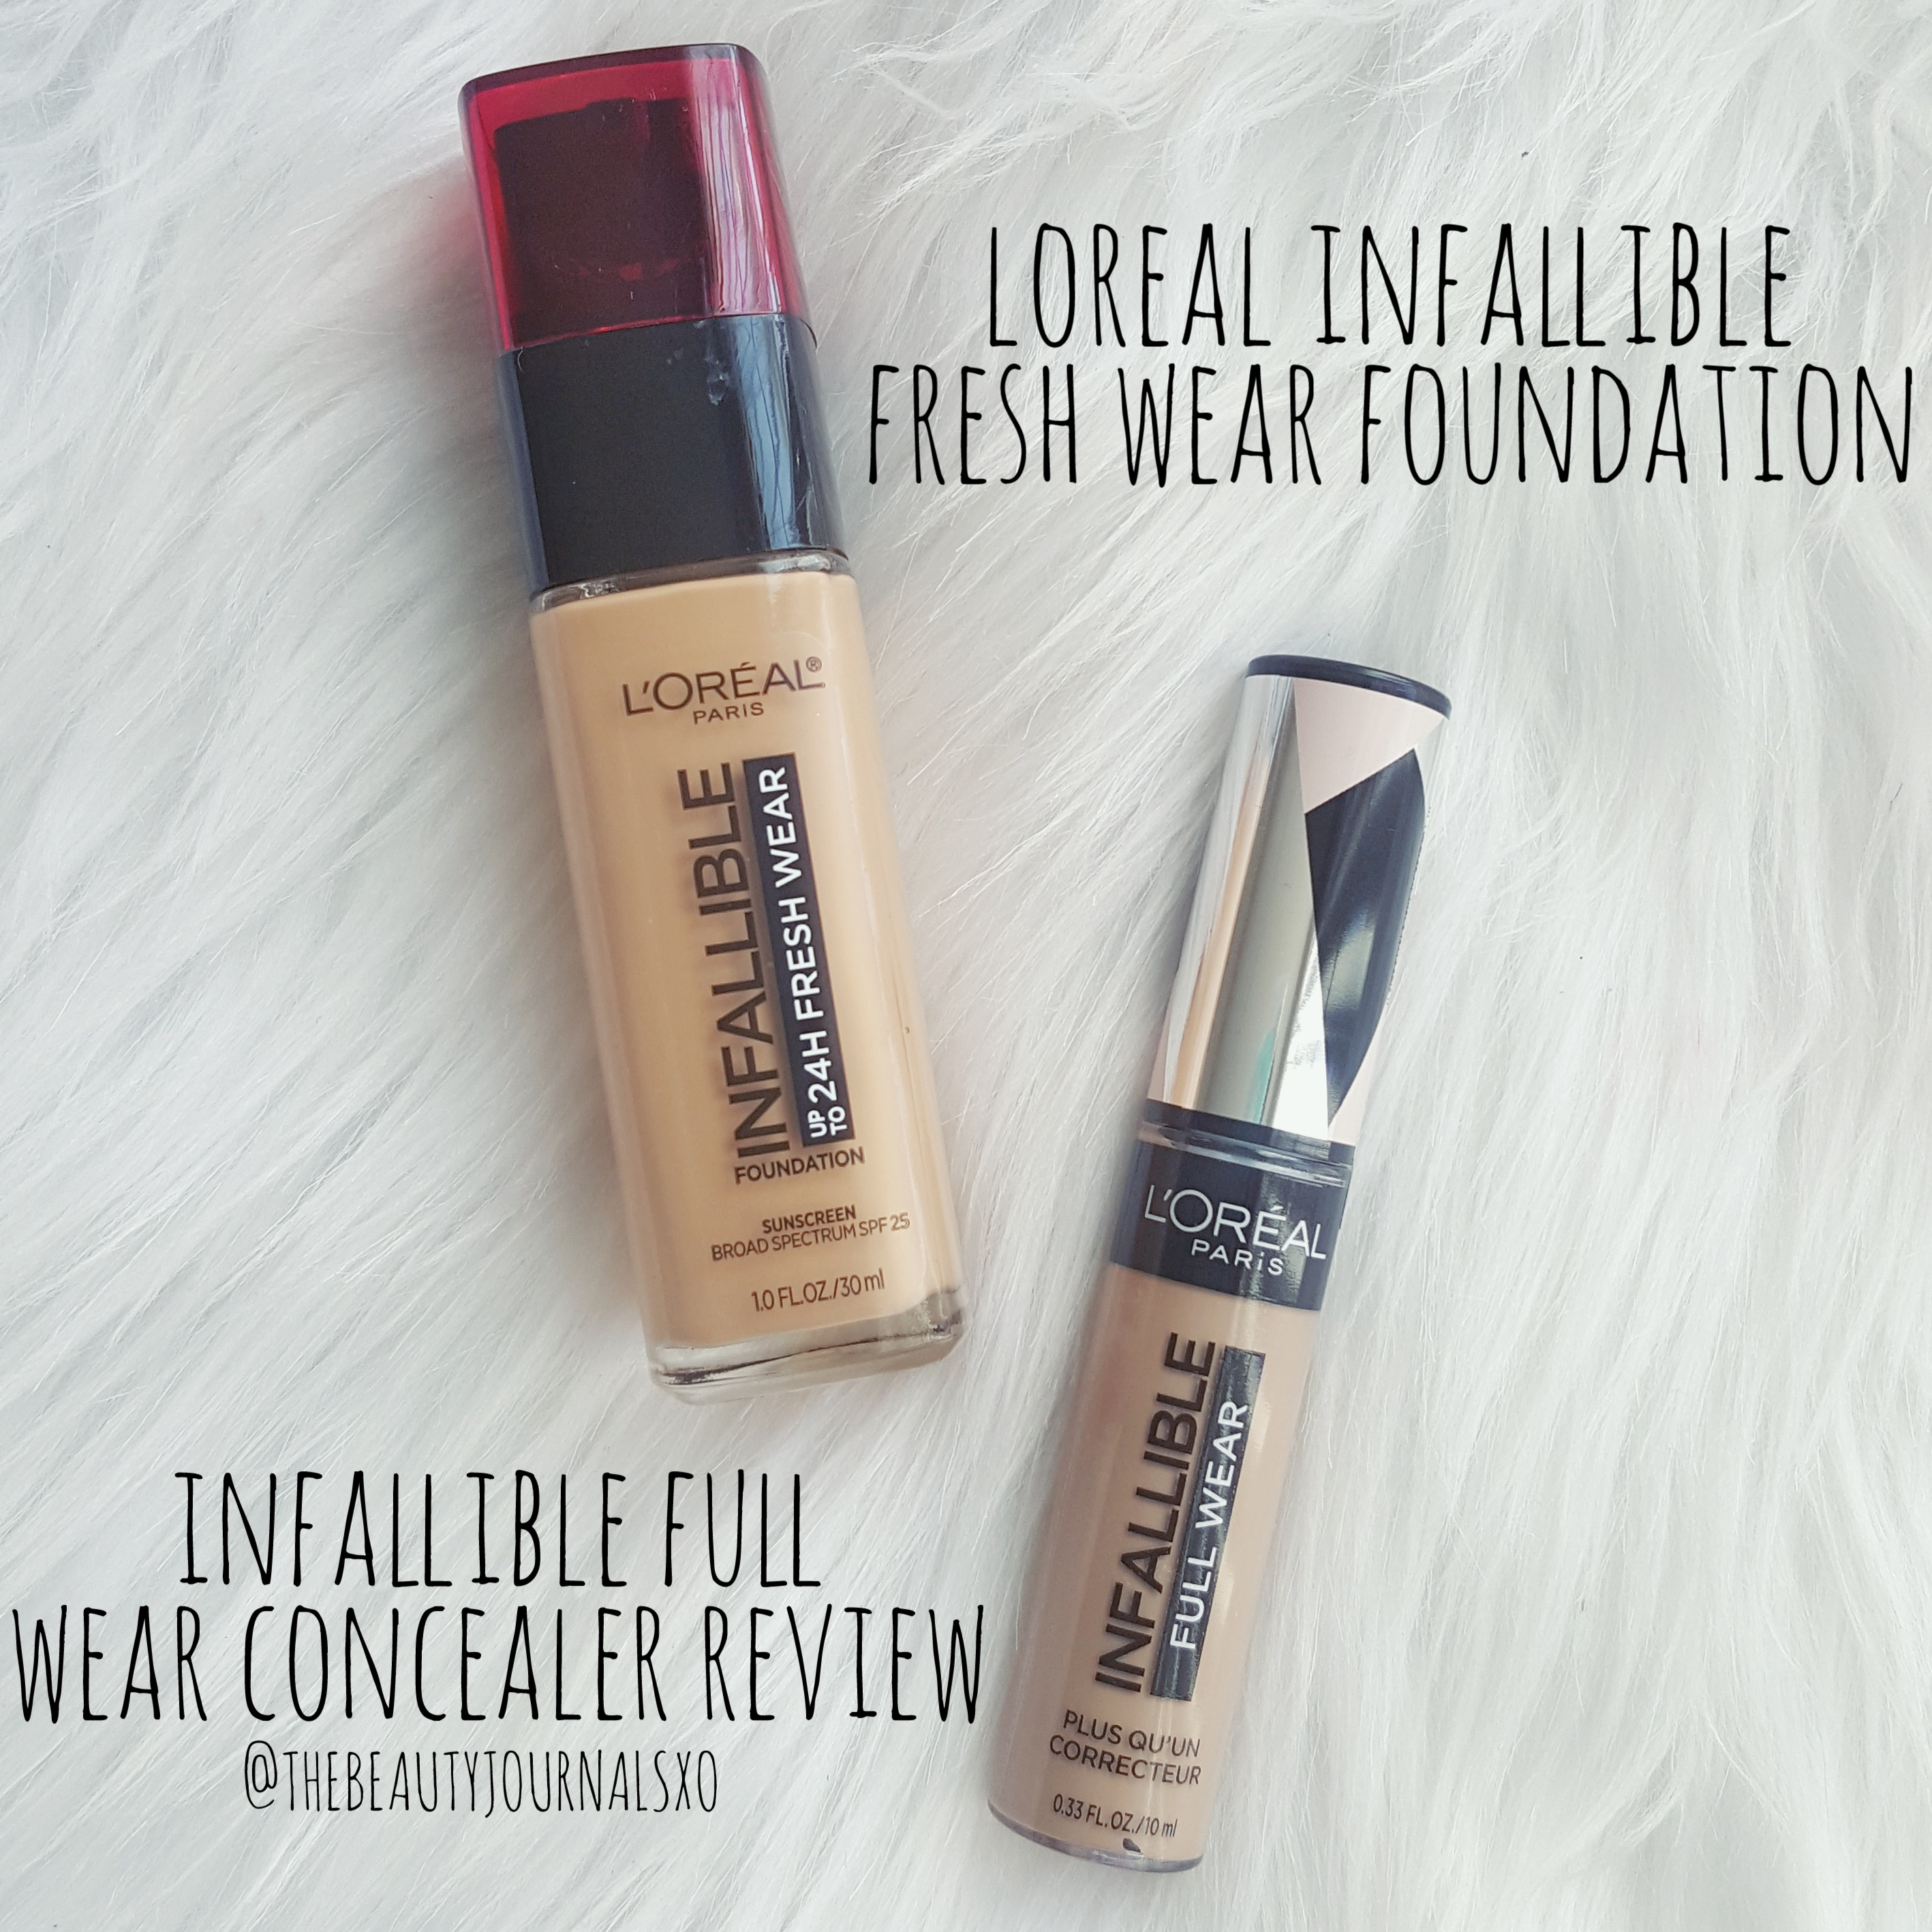 L Oreal Infallible 24hr Fresh Wear Foundation And Infallible Full Wear Concealer Review The Beauty Journals